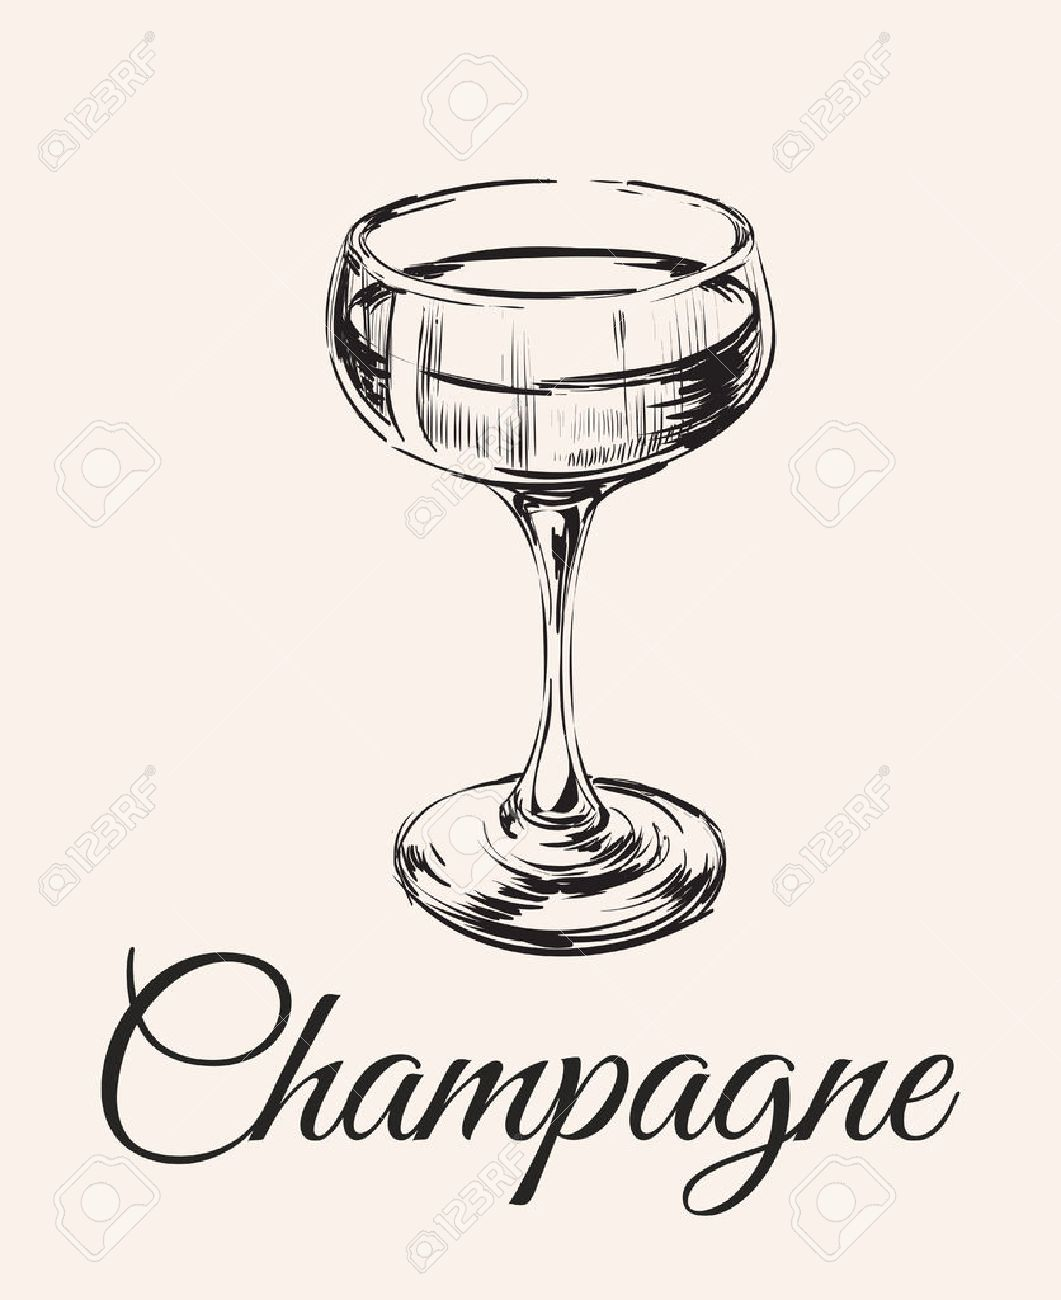 Champagne Glass Hand Drawing Vector Illustration . Alcoholic Drink. - 71946442